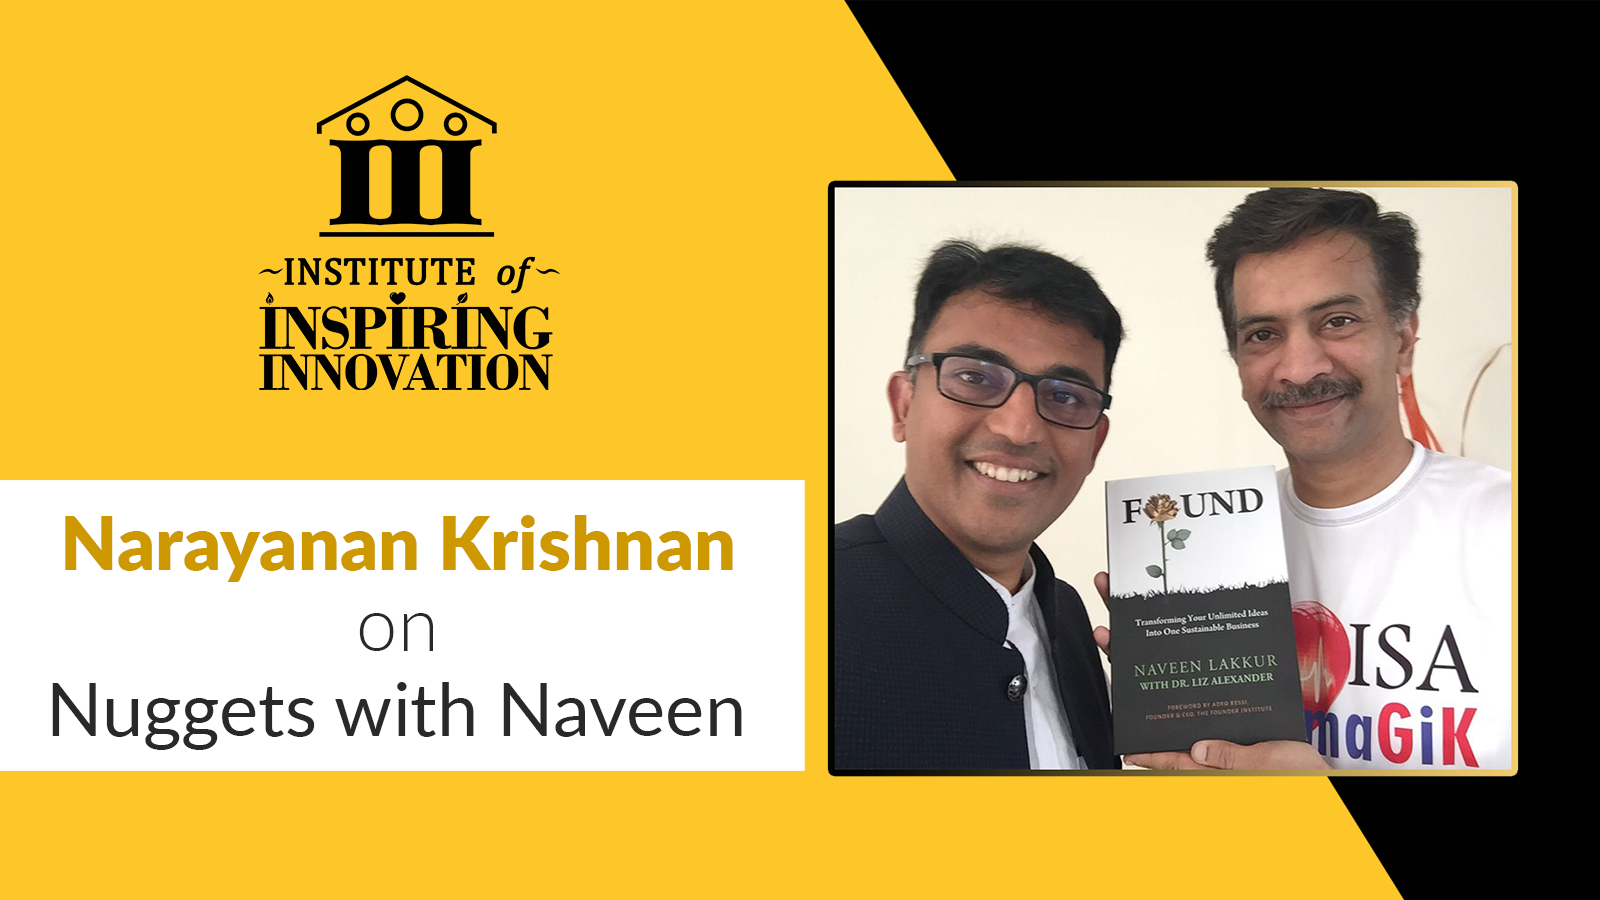 Narayanan Krishnan On Nuggets with Naveen